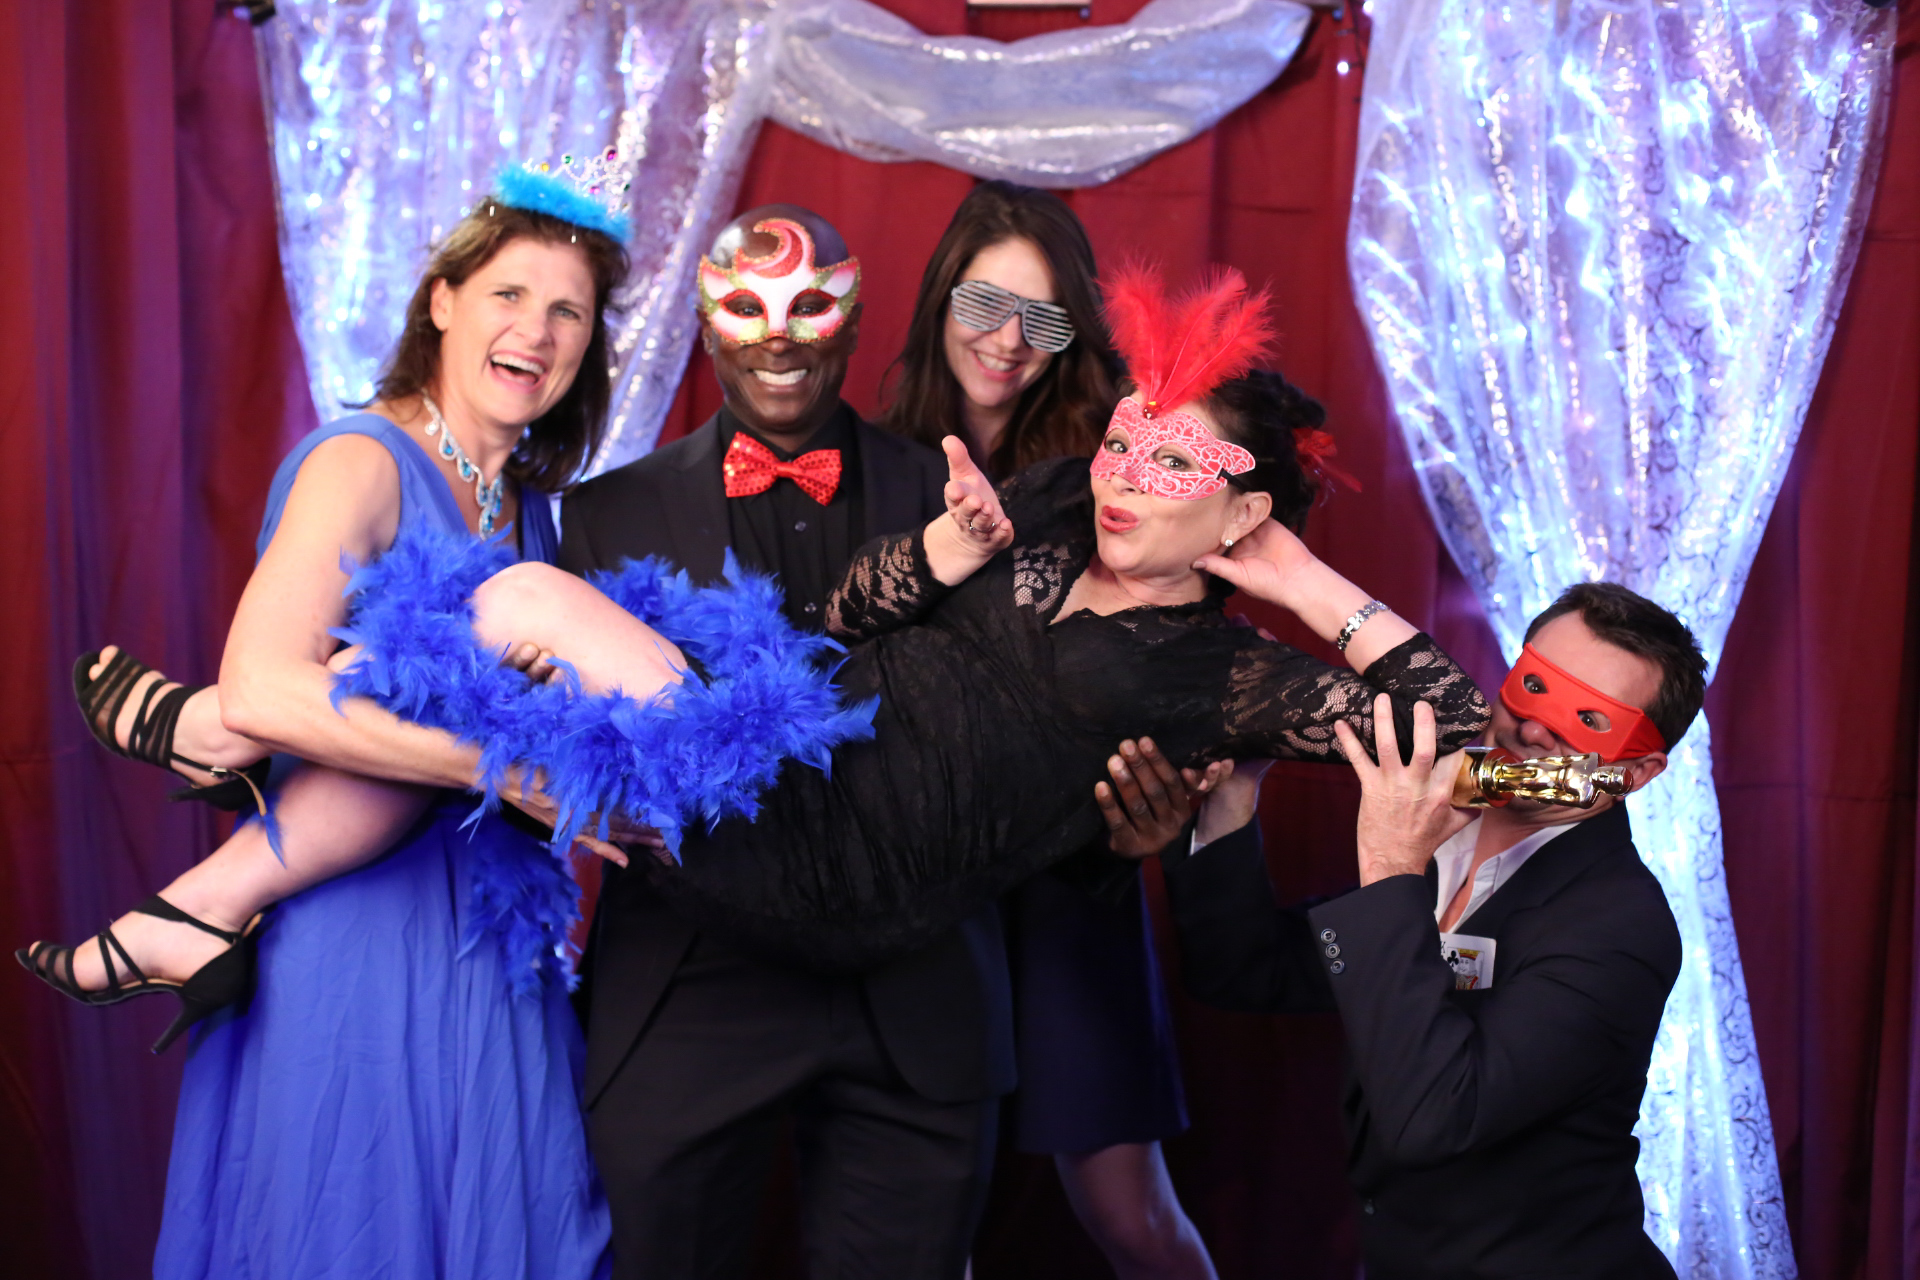 Photo booth action at the Rio Rhythmics Ball